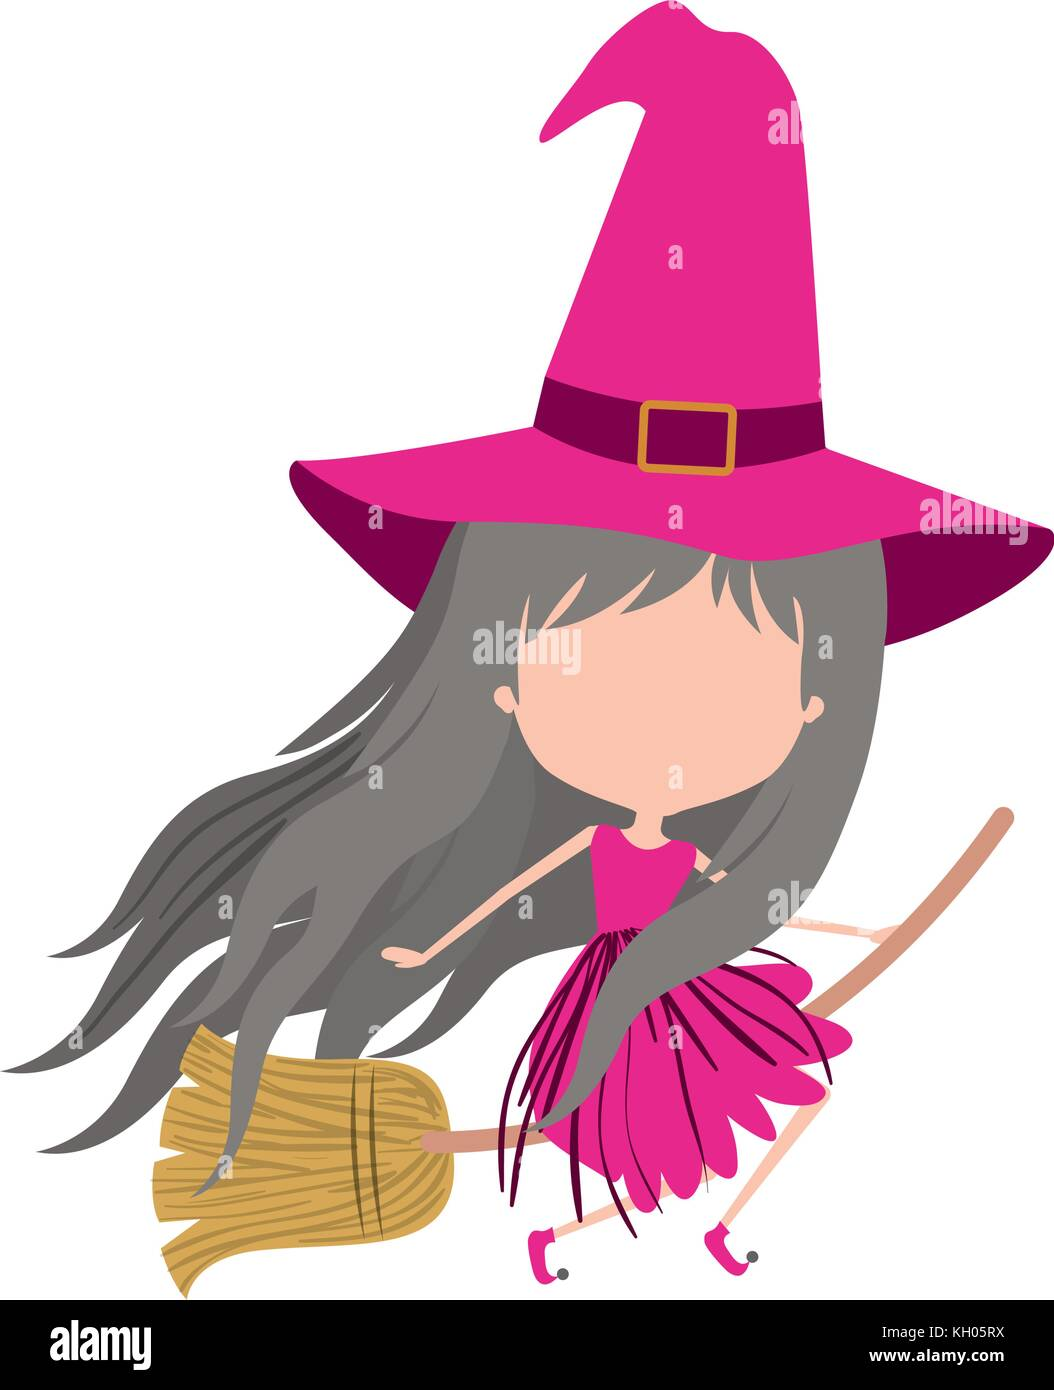 Cute Witch Flying In Broom And Without Face In Colorful Silhouette On Stock Vector Image Art Alamy